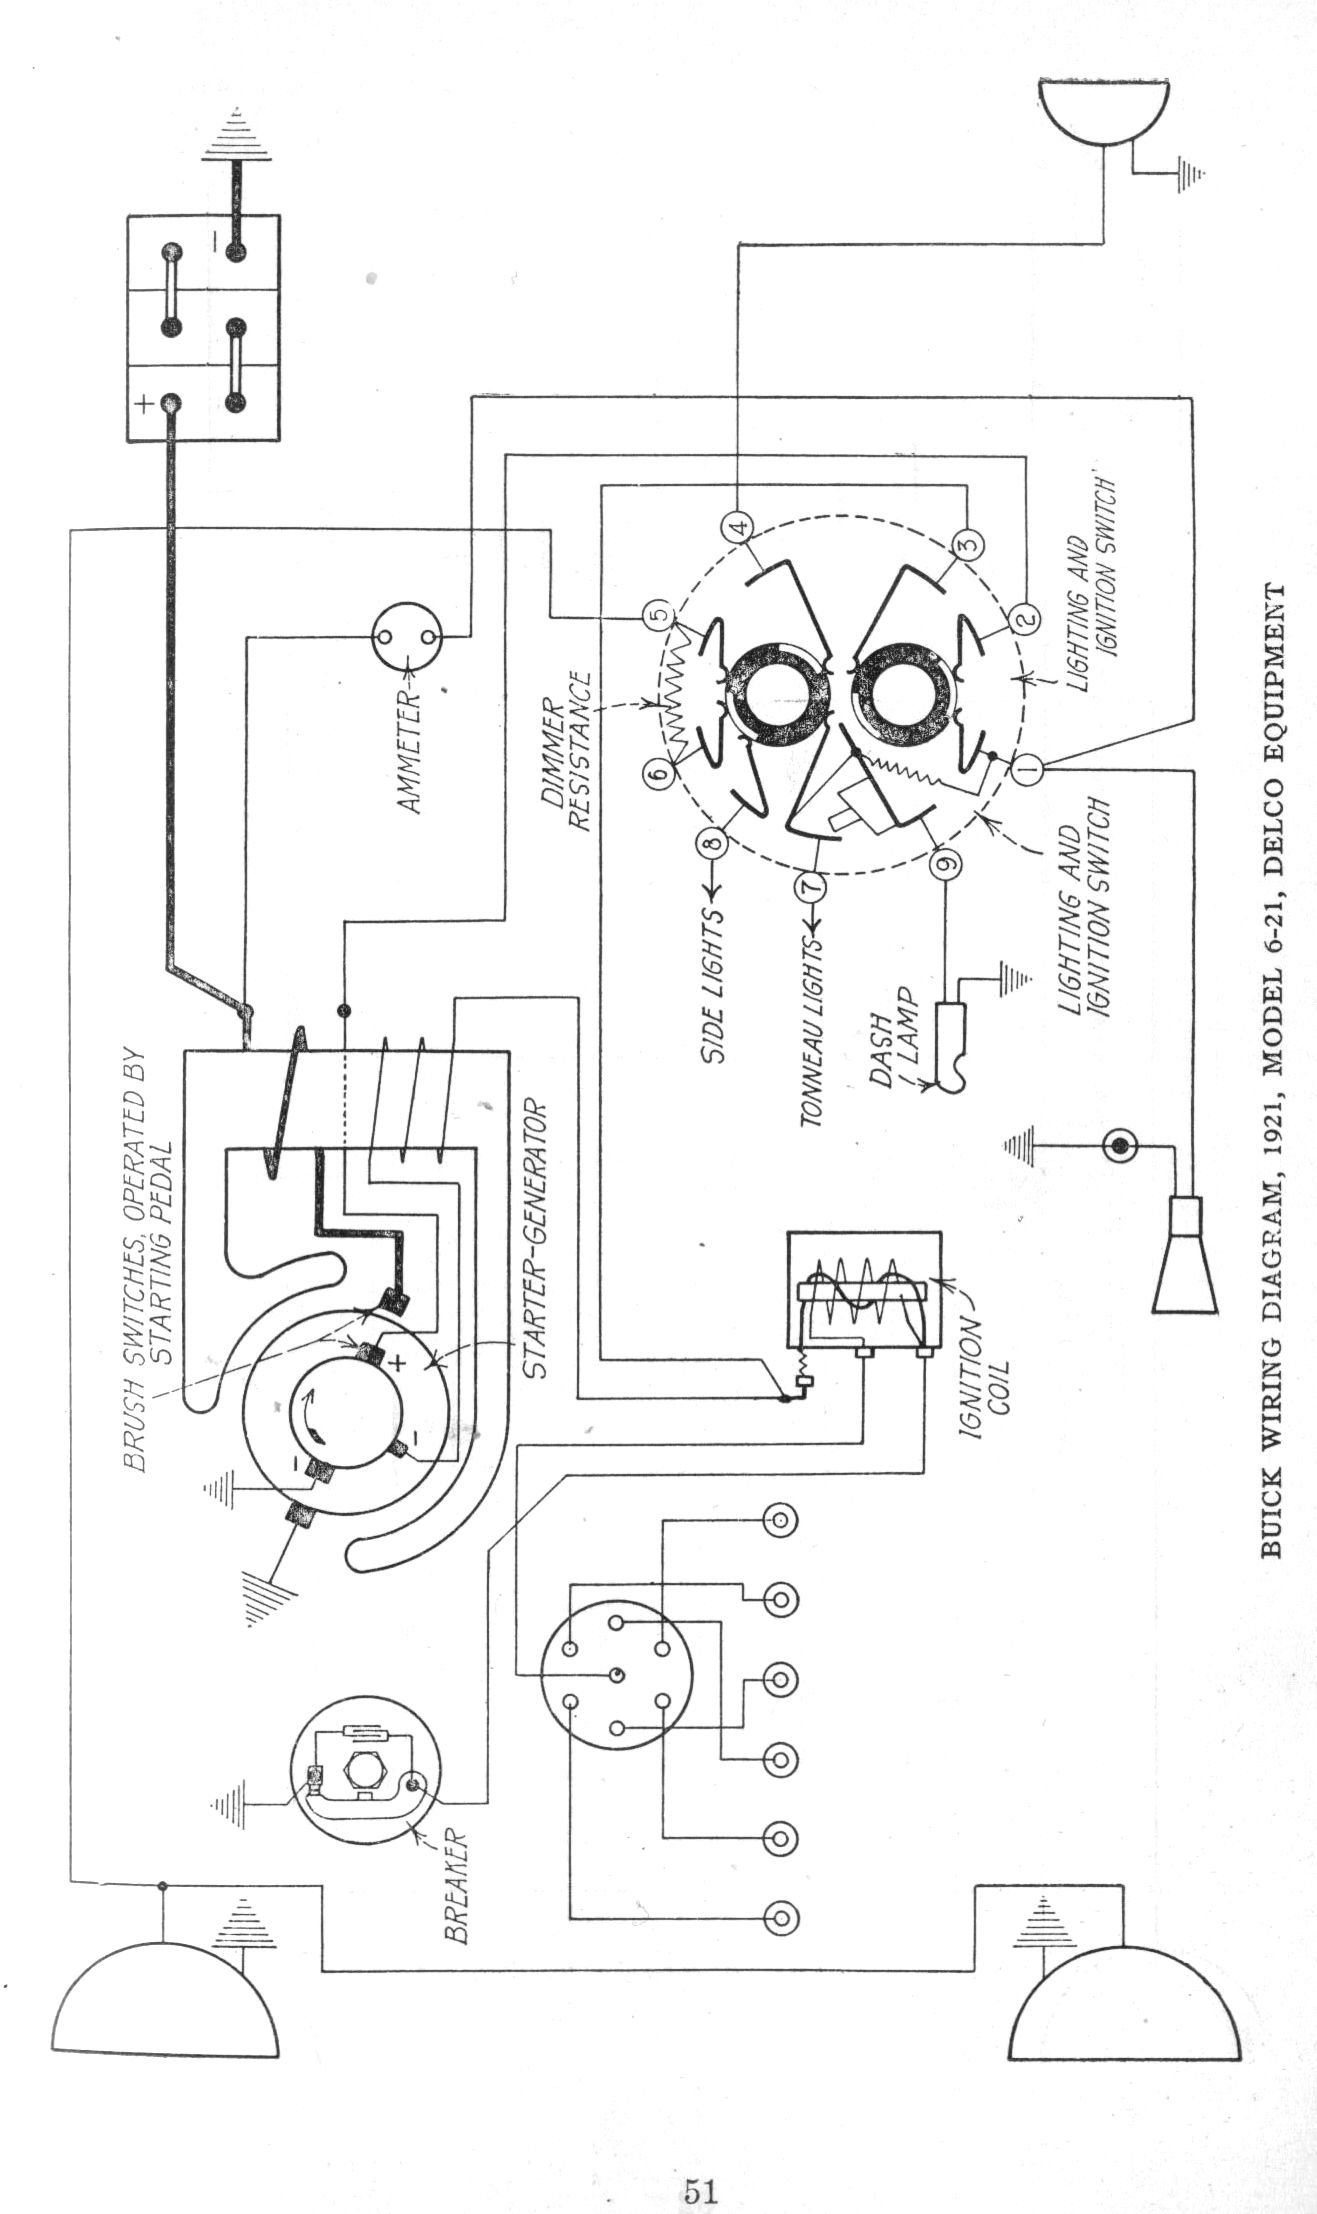 early 1920 s apperson and buick wiring diagrams the old car manual rh oldcarmanualproject com 2000 Buick LeSabre Wiring-Diagram 1965 Buick Skylark Wiring-Diagram